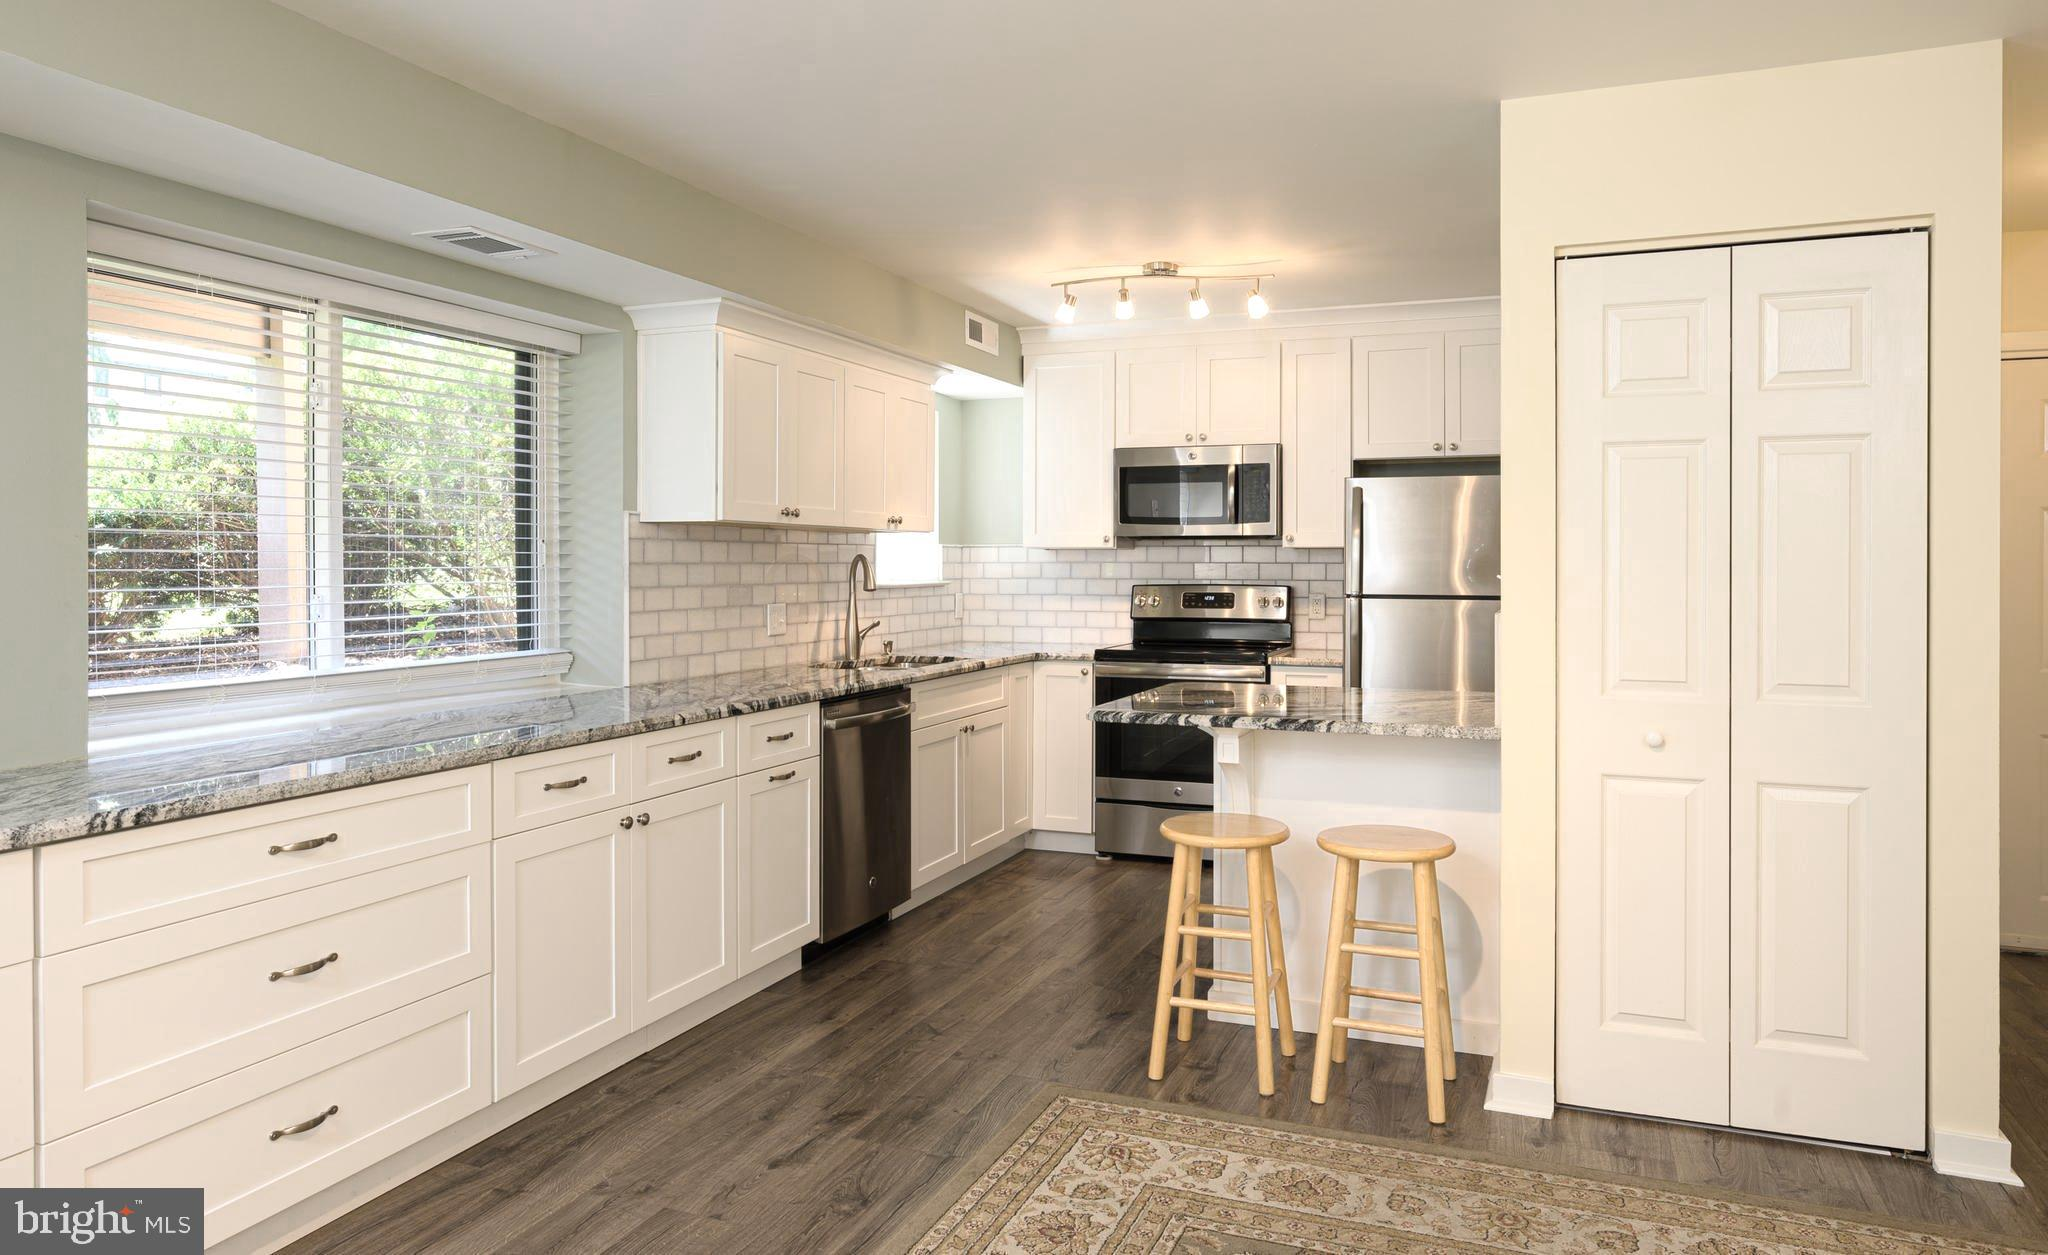 New, New, and Newer! Large windows allow this condo to be filled with bright, natural light! This 1